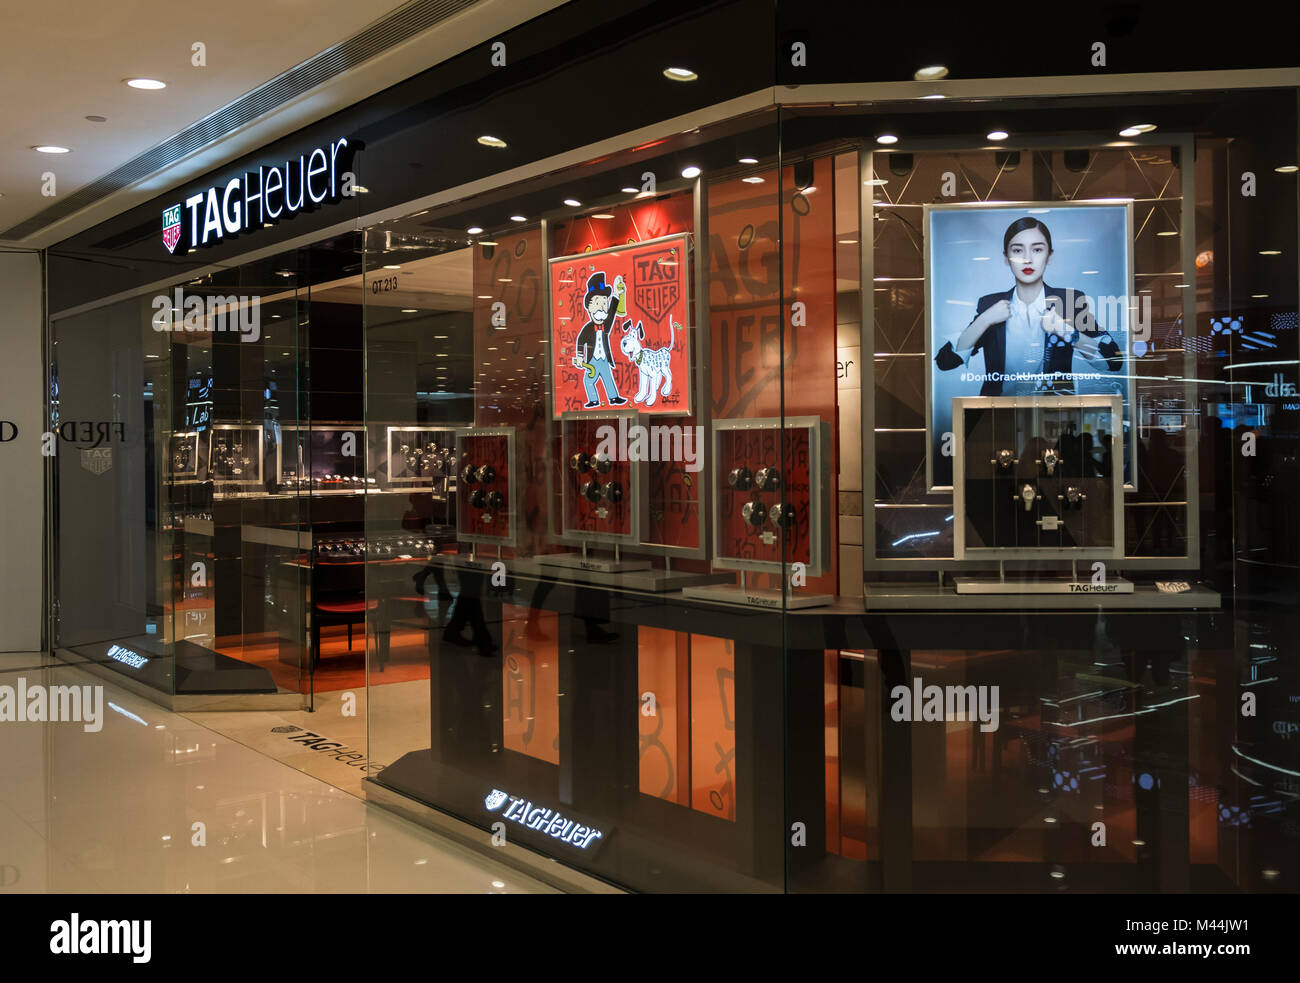 e092cb25f0e Tag Heuer Store Stock Photos & Tag Heuer Store Stock Images - Alamy